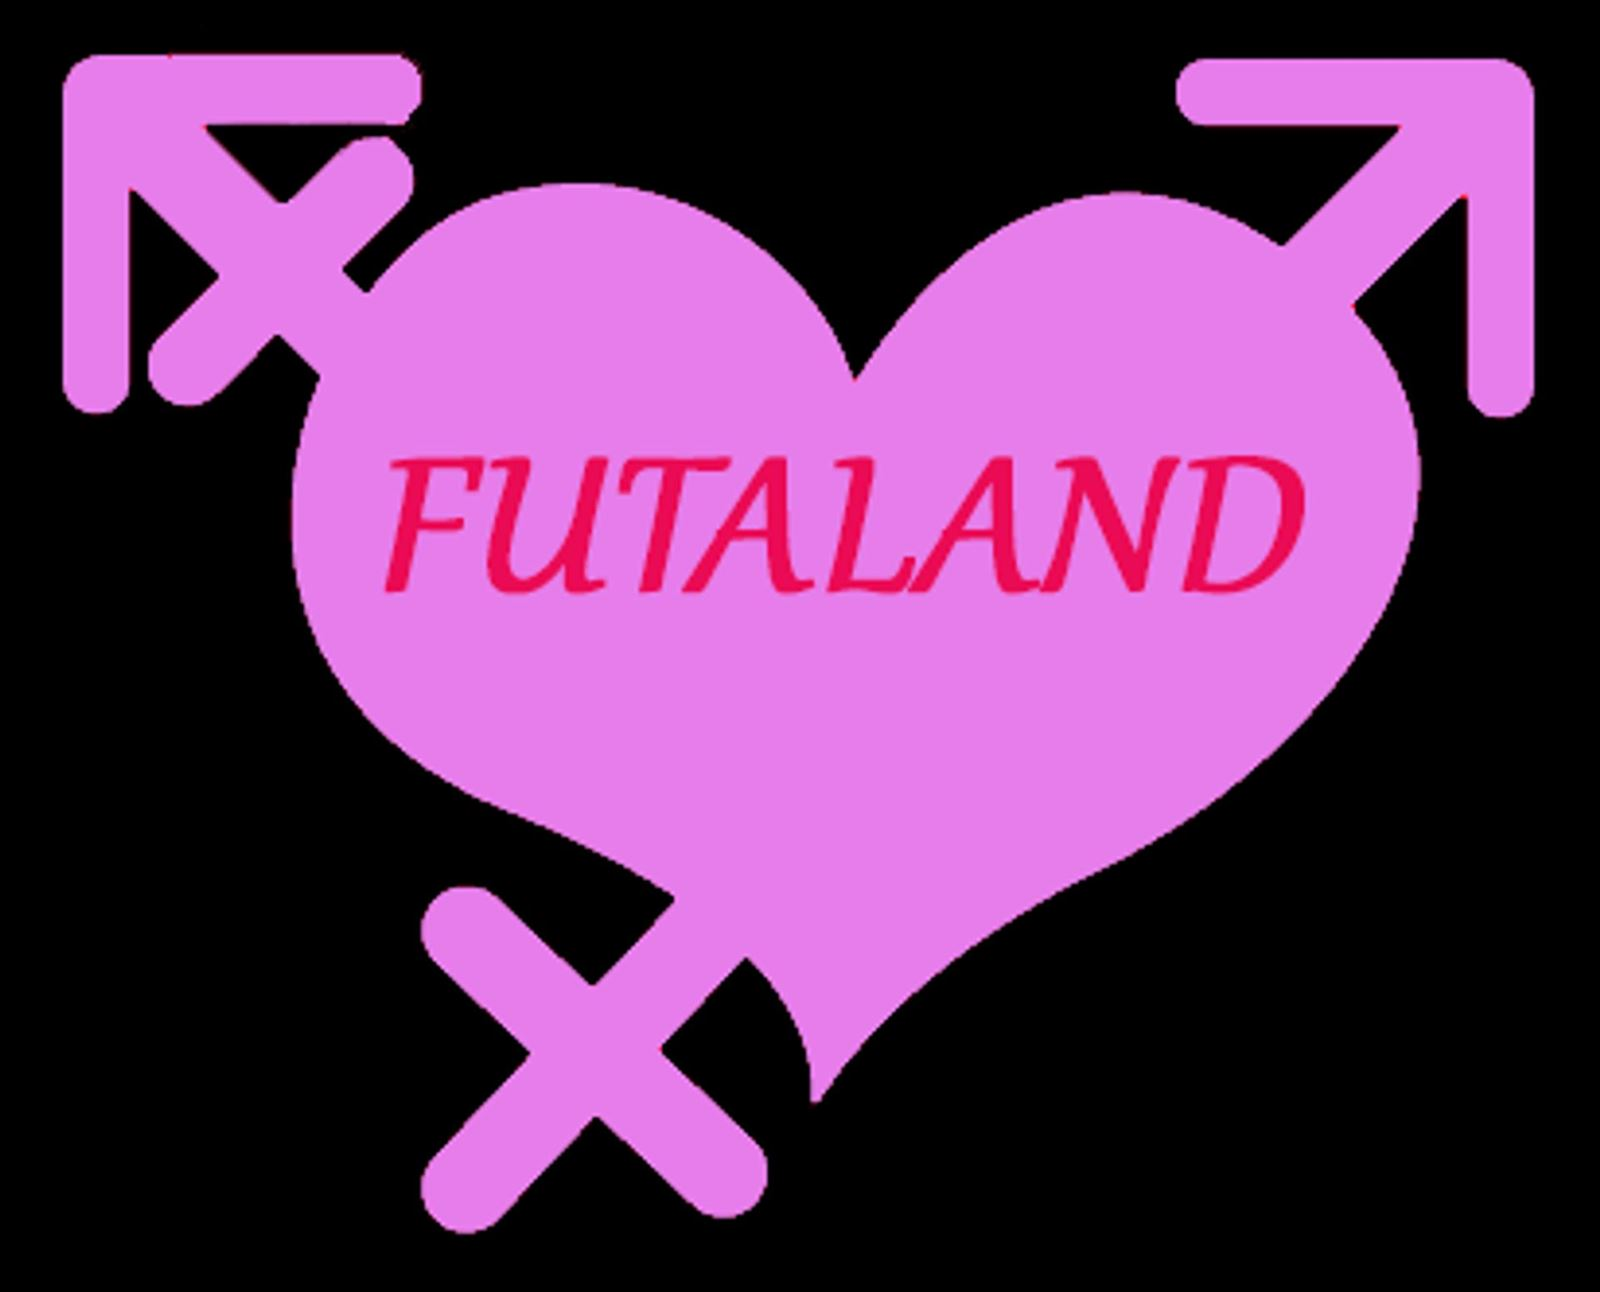 Futaland Adult Game Cover